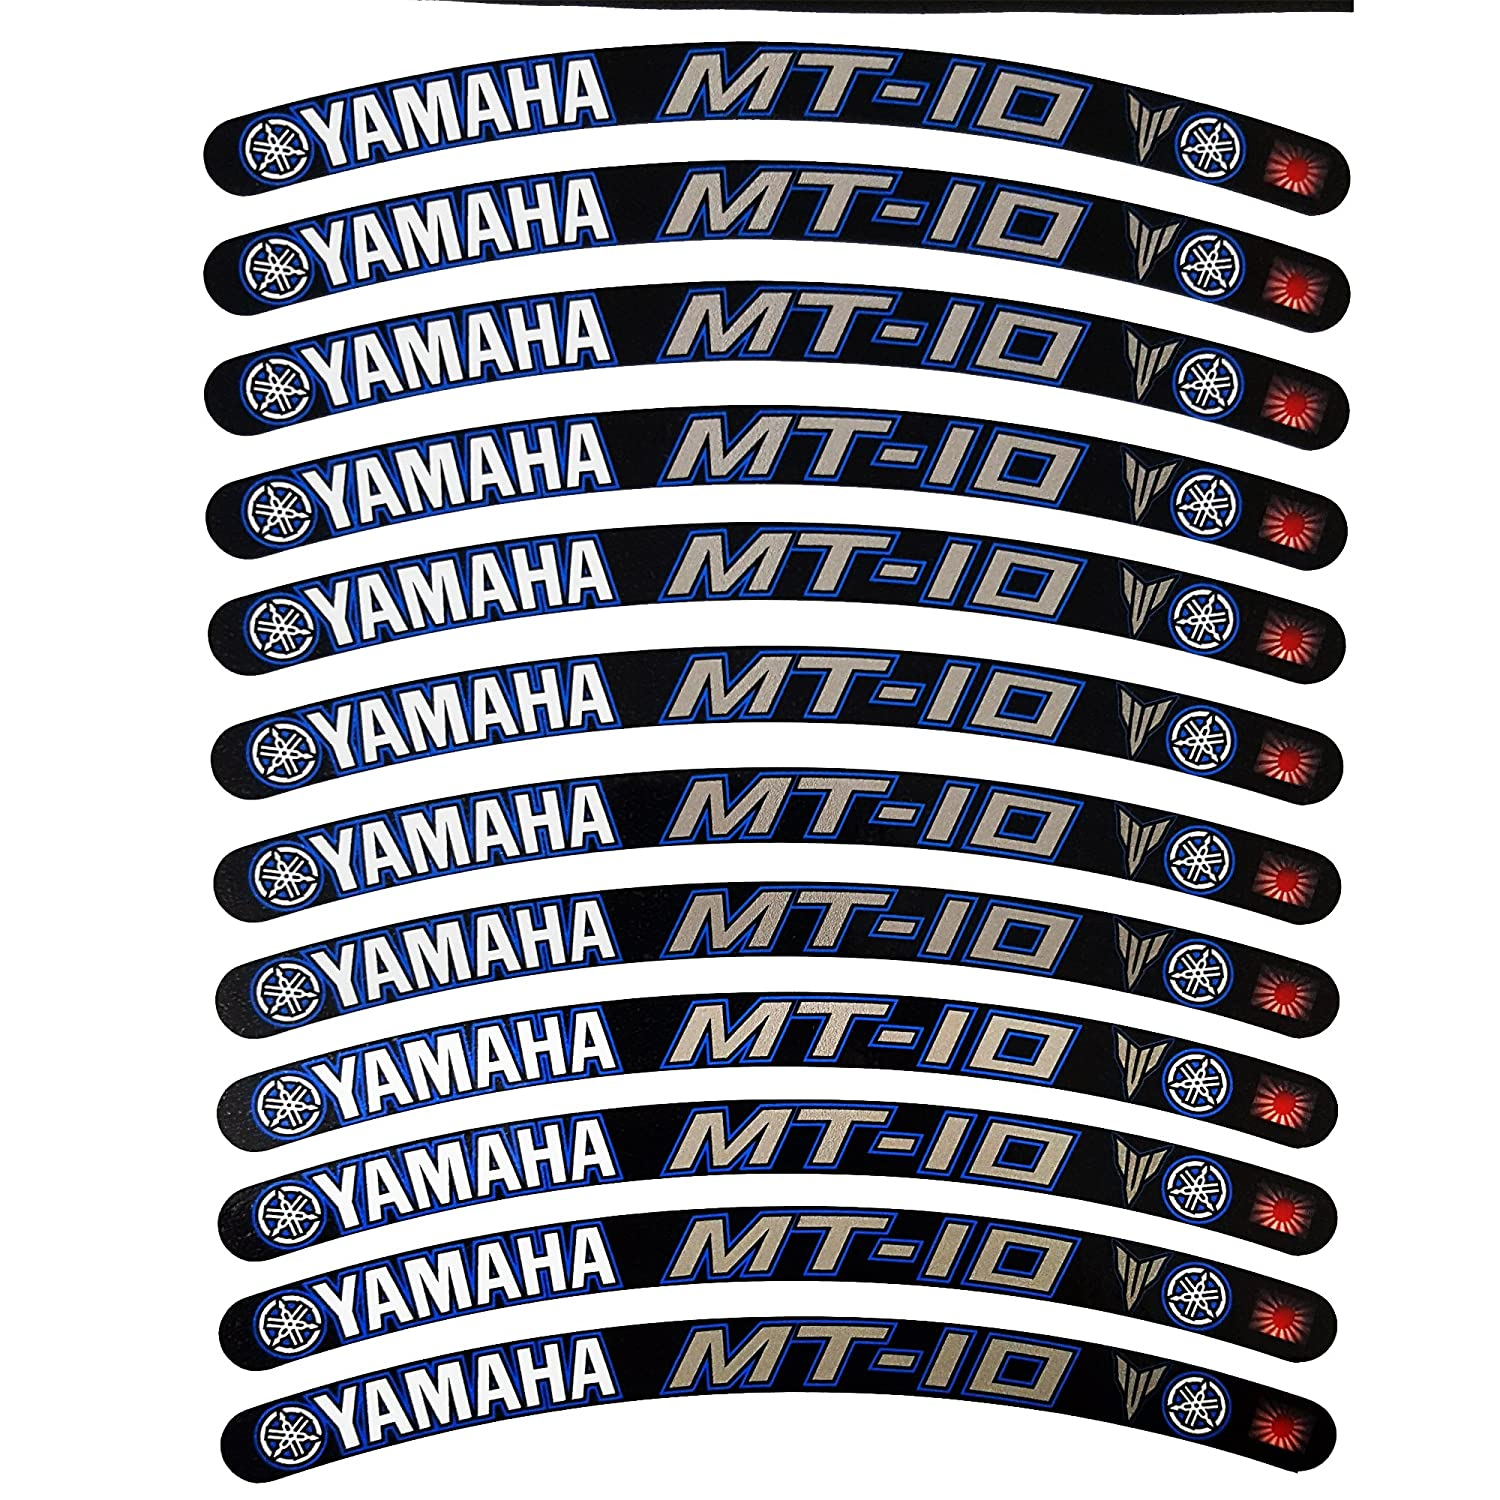 Yamaha MT10 wheel rim graphics black blue silver x 12 decals stickers